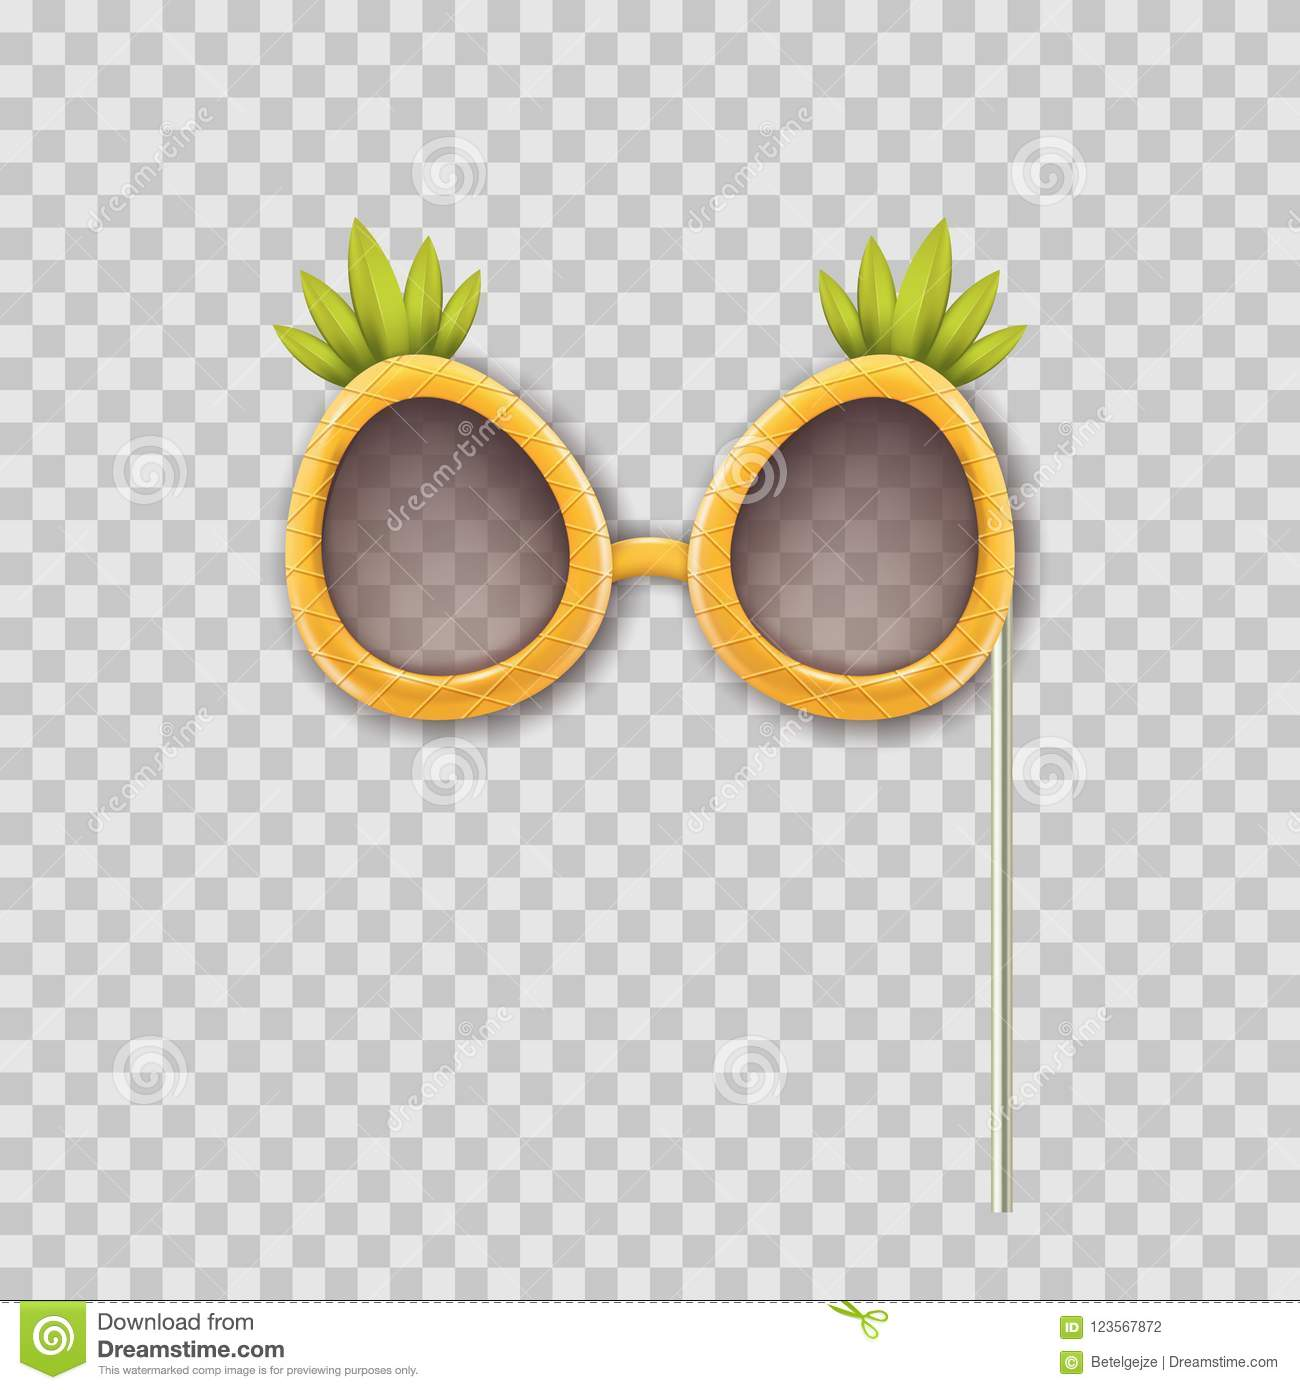 Vector realistic 3d illustration of photo booth props pineapple glasses. Object isolated on transparent background.